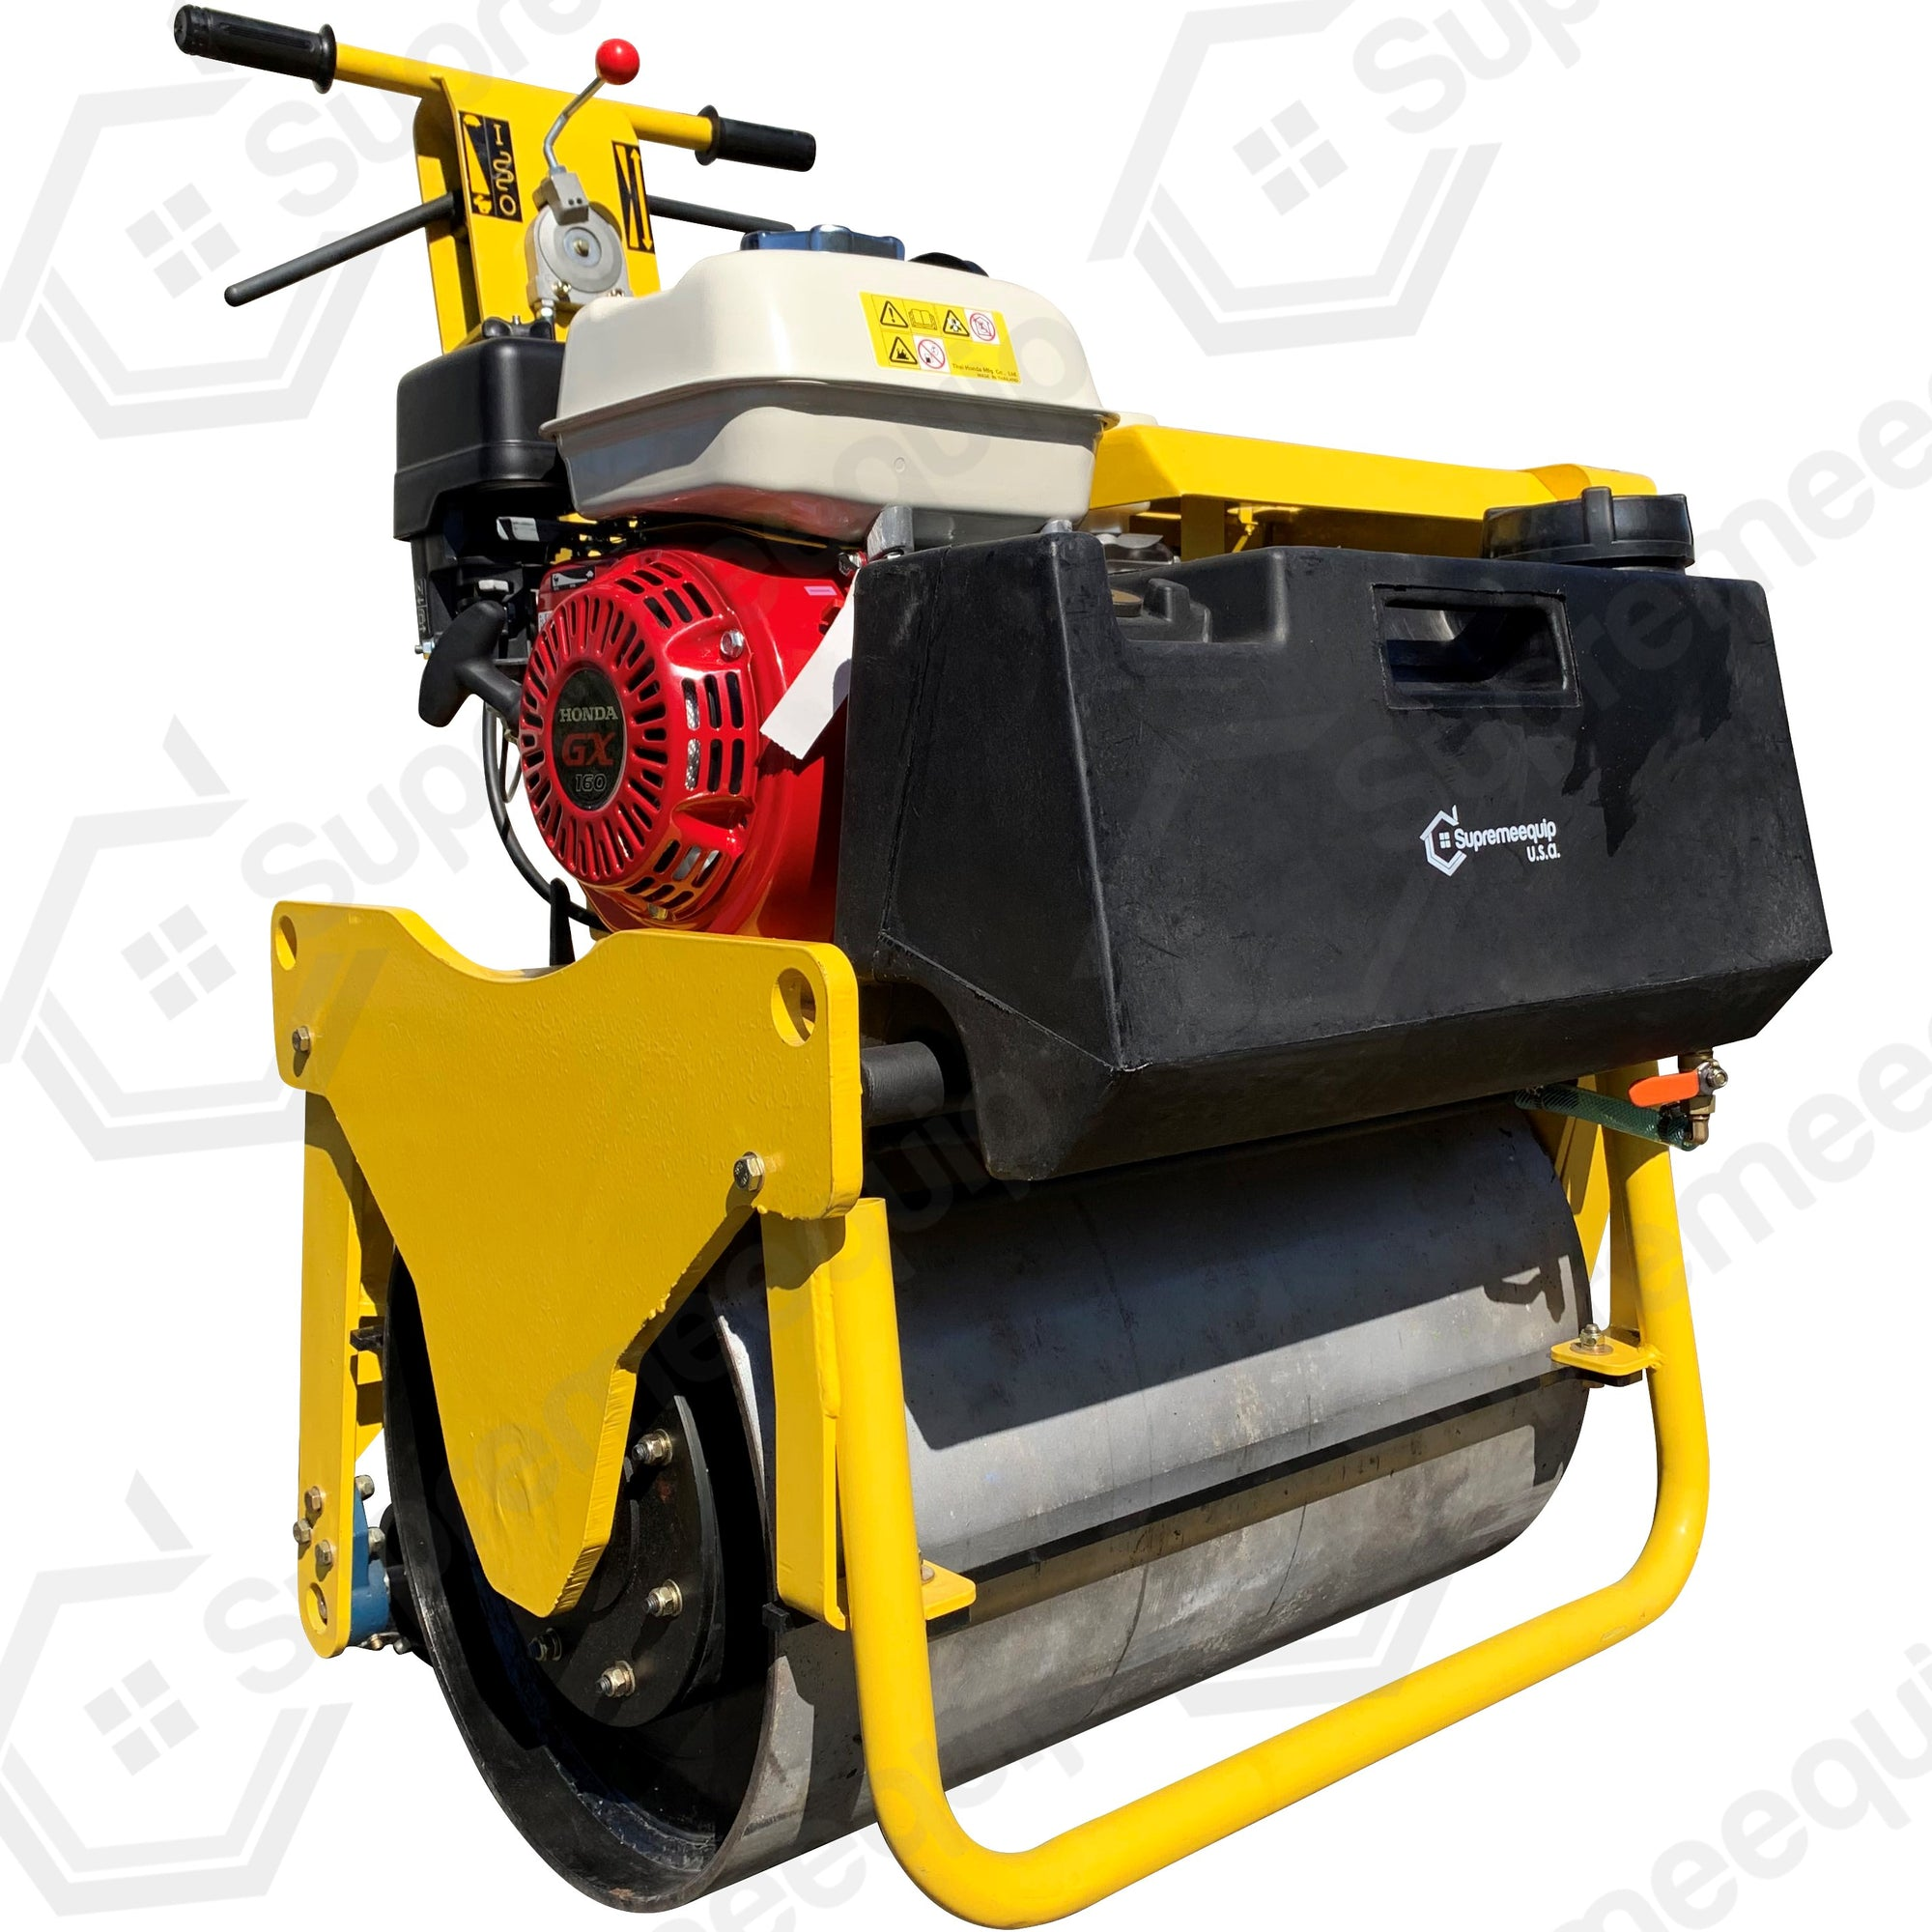 Single Drum Vibratory Roller 600 lbs Honda GX160, for road and asphalt compactor